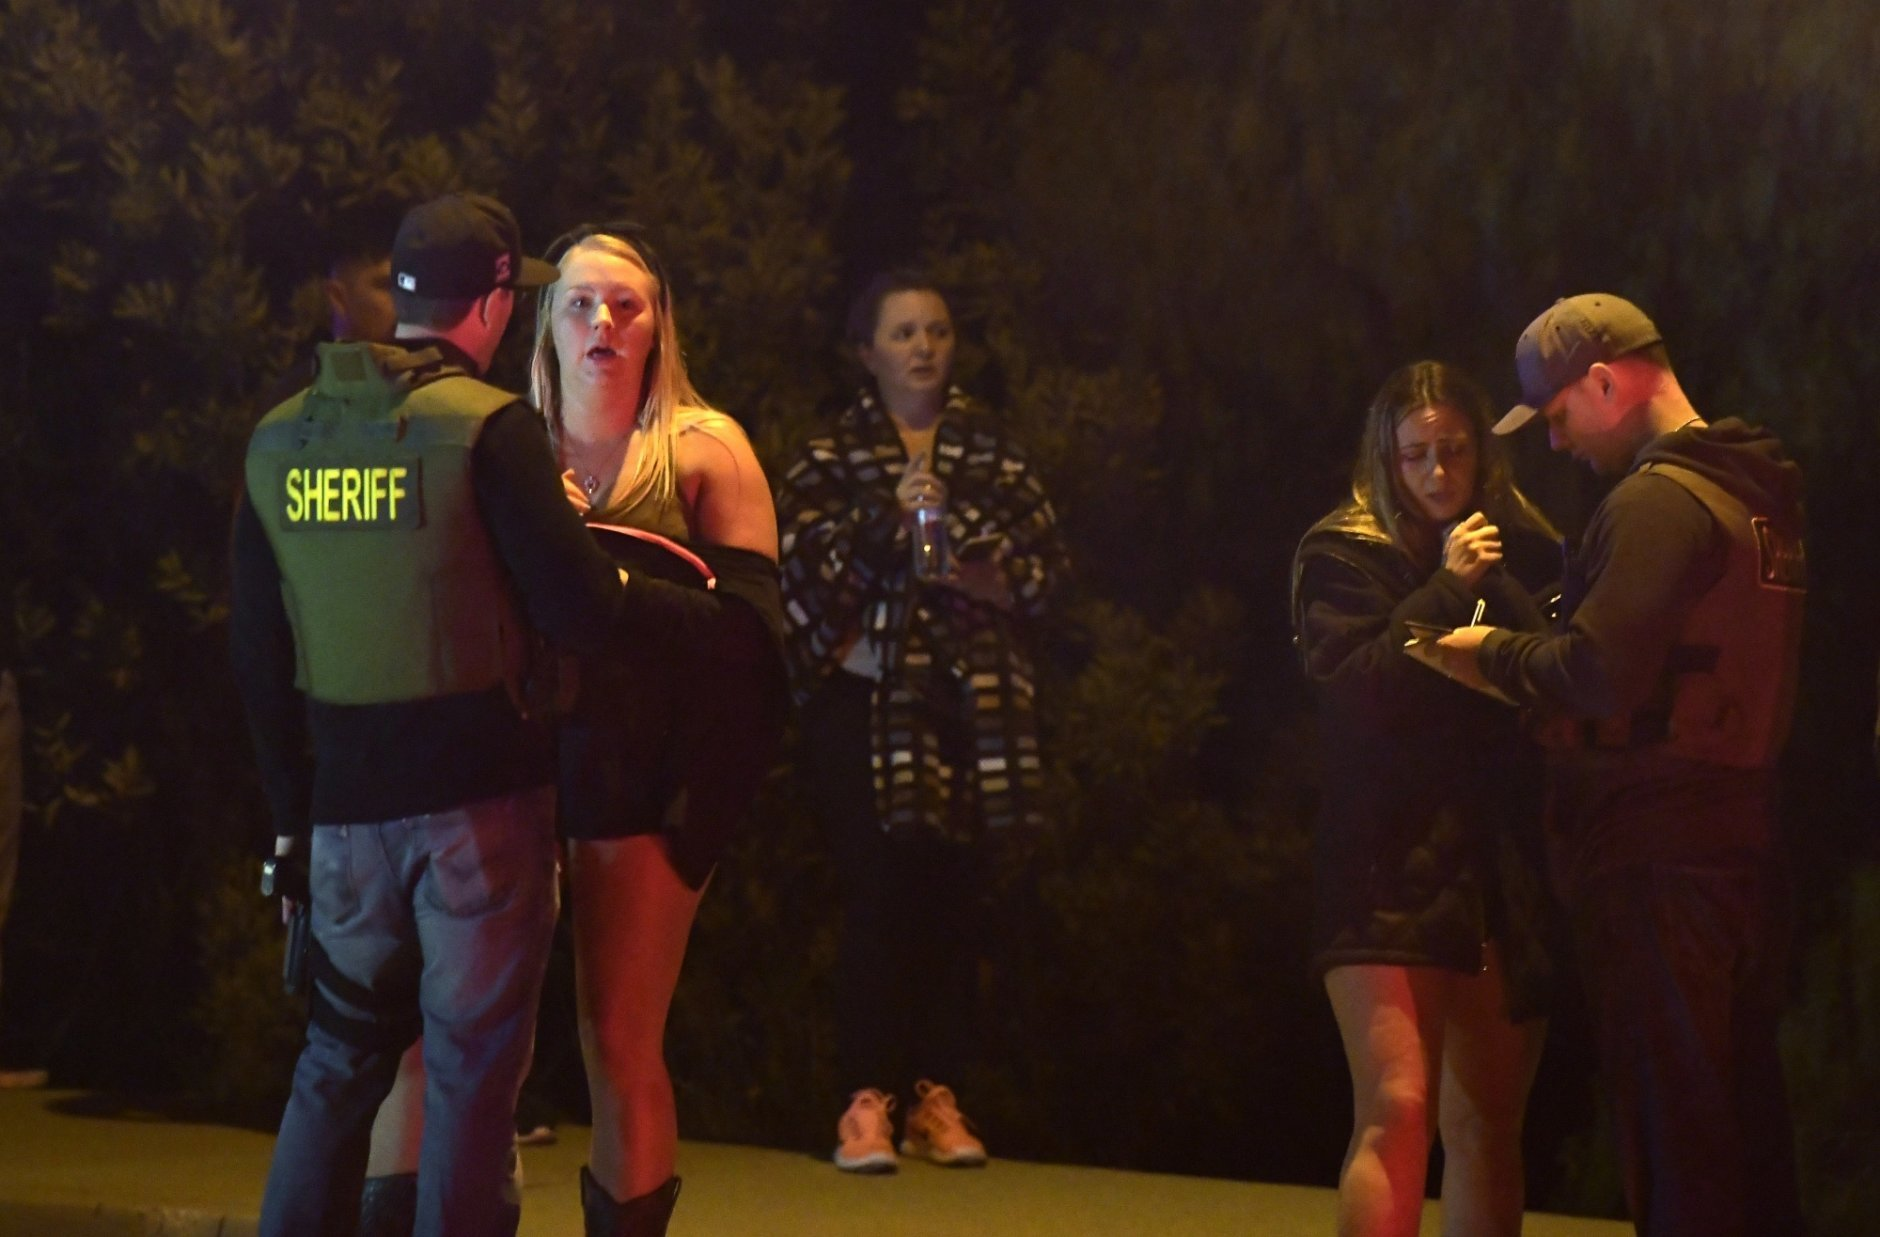 """Sheriff's deputies speak to potential witnesses as they stand near the scene of a mass shooting Thursday, Nov. 8, 2018, in Thousand Oaks, Calif., where a gunman opened fire Wednesday night inside a country dance bar crowded with hundreds of people on """"college night,"""" killing at least 12 people, including a sherif's deputy who rushed to the scene. Ventura County sheriff's spokesman says the gunman is dead inside the bar. (AP Photo/Mark J. Terrill)"""